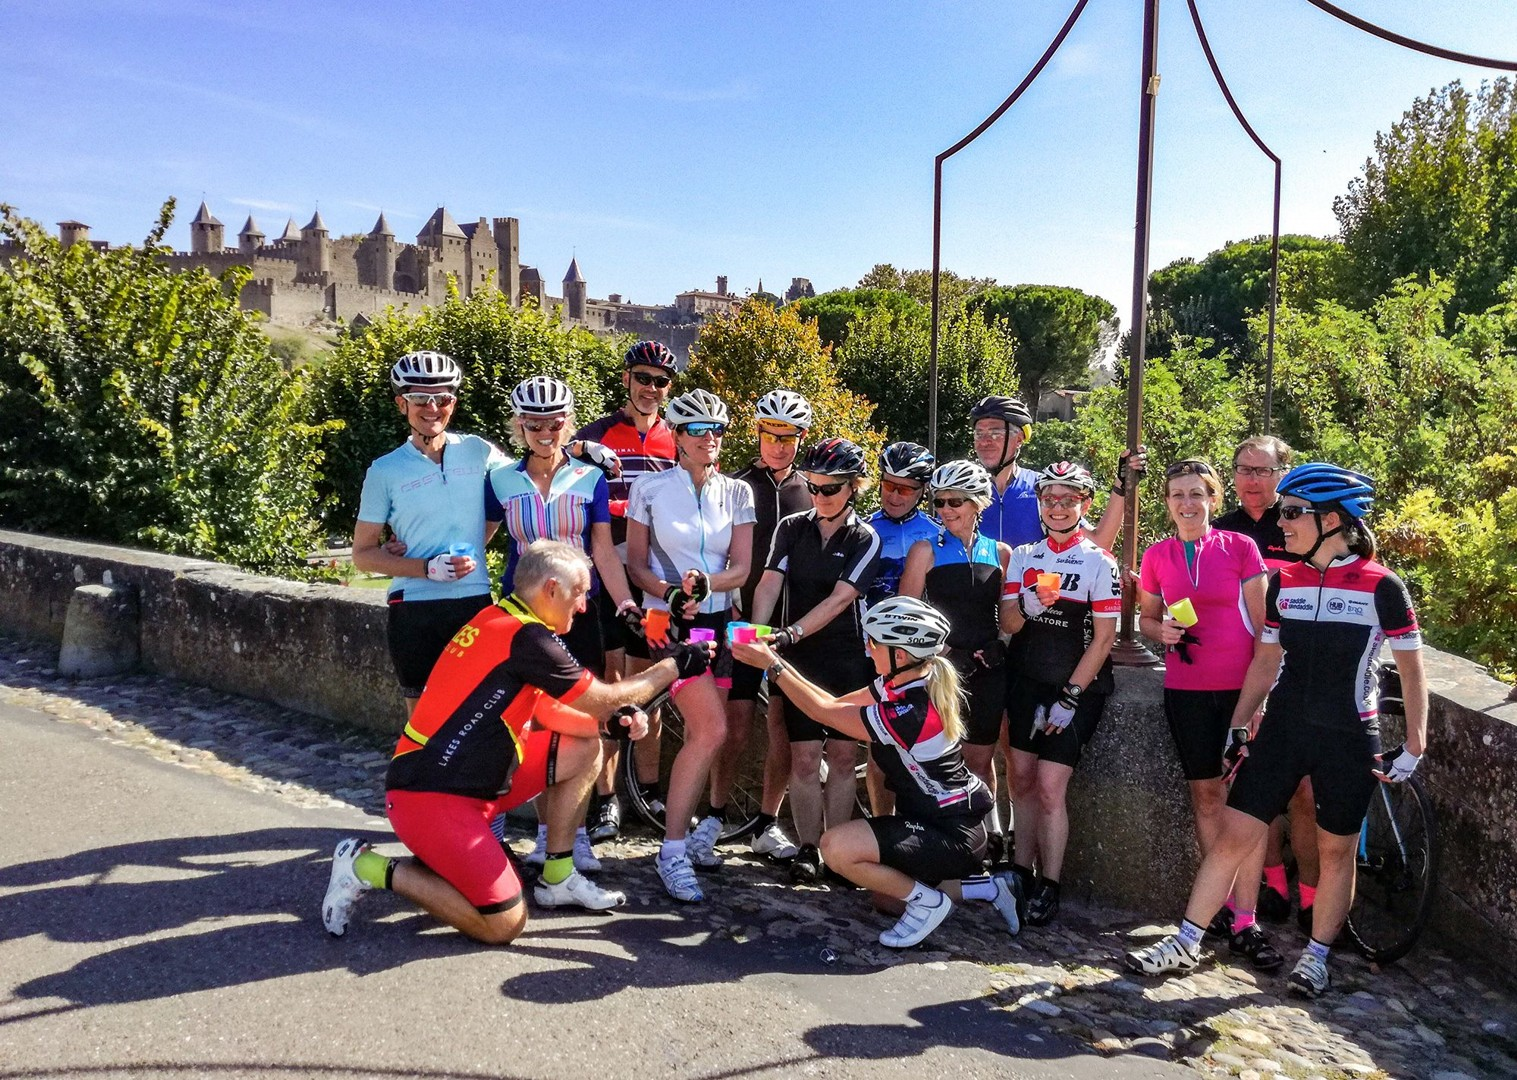 group-cycling-holiday-in-france-guided-road-tour-ardeche-to-carcassonne.jpg - France - Ardeche to Carcassonne - Guided Road Cycling Holiday - Road Cycling